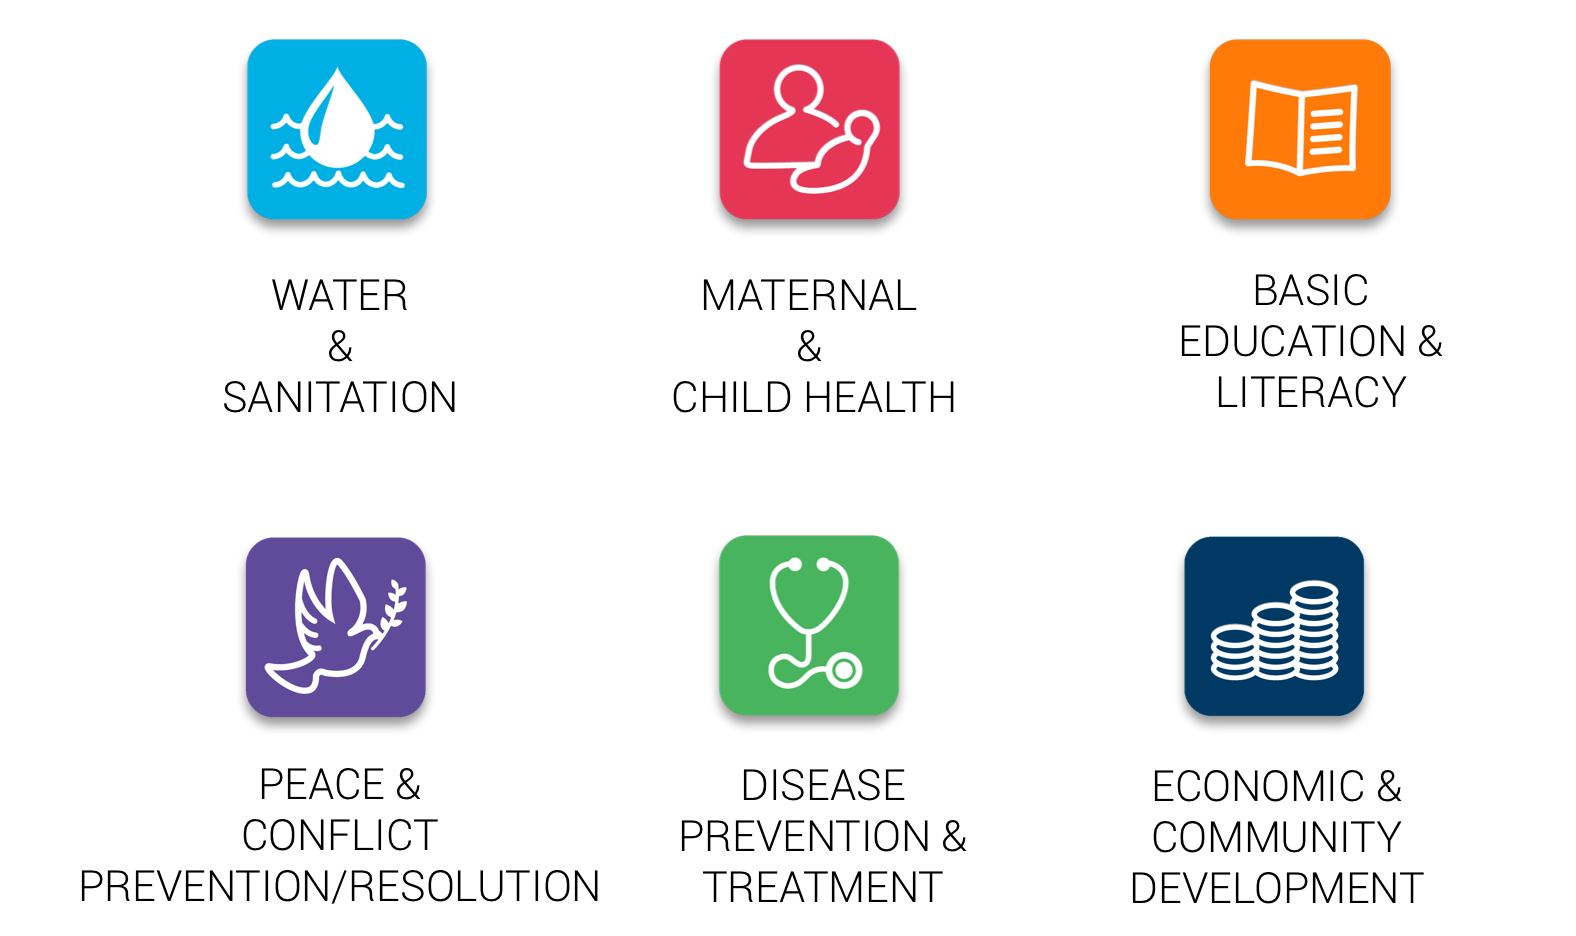 Rotary's Areas of Focus